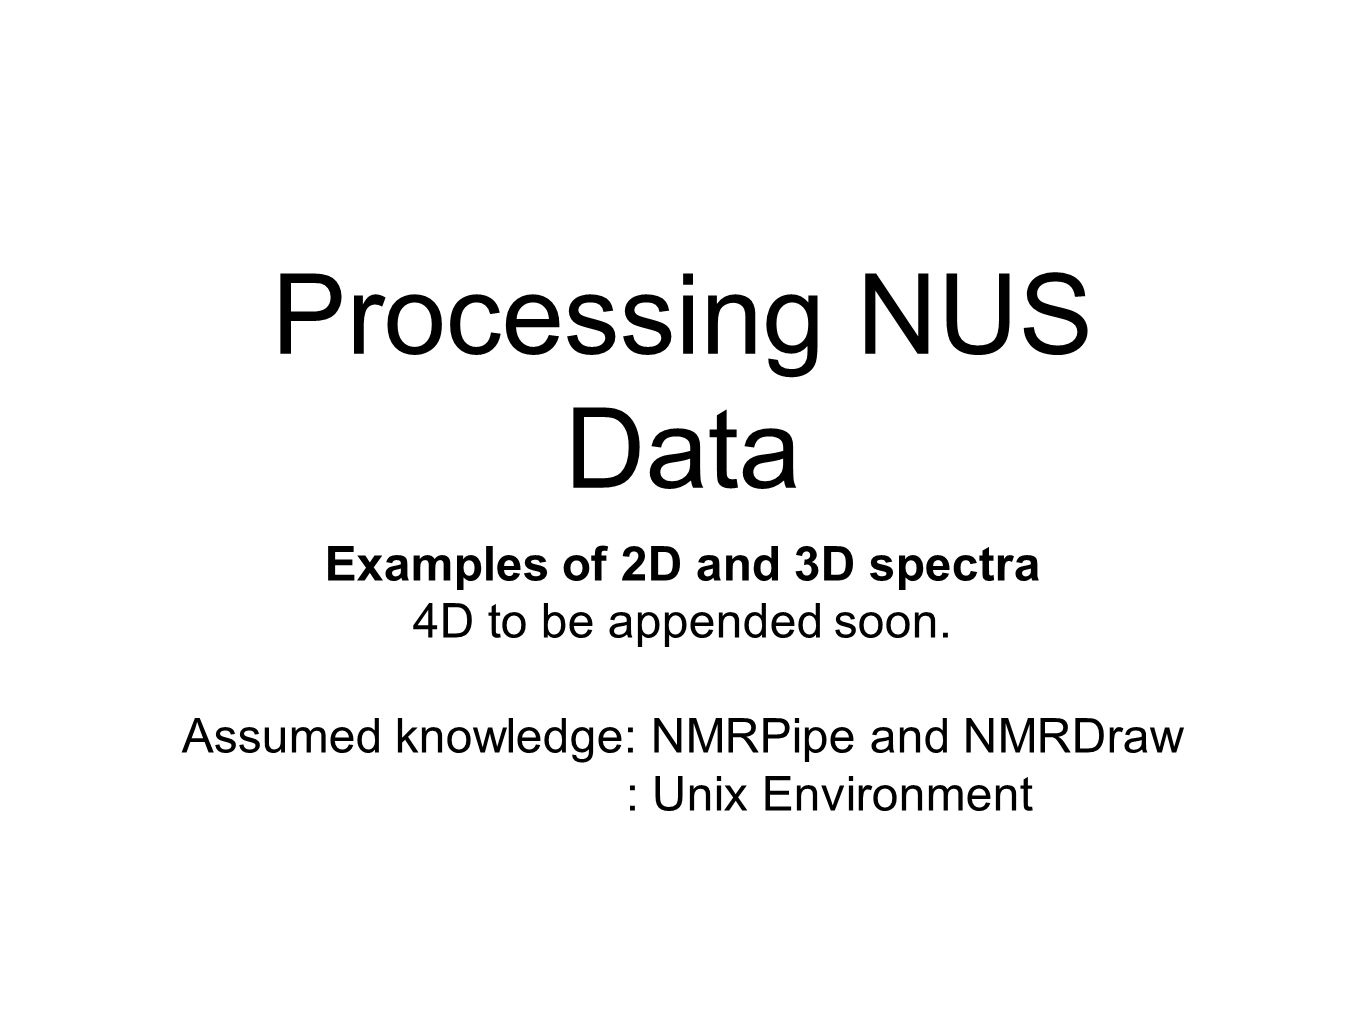 Processing NUS Data Examples of 2D and 3D spectra 4D to be appended soon. Assumed knowledge: NMRPipe and NMRDraw : Unix Environment